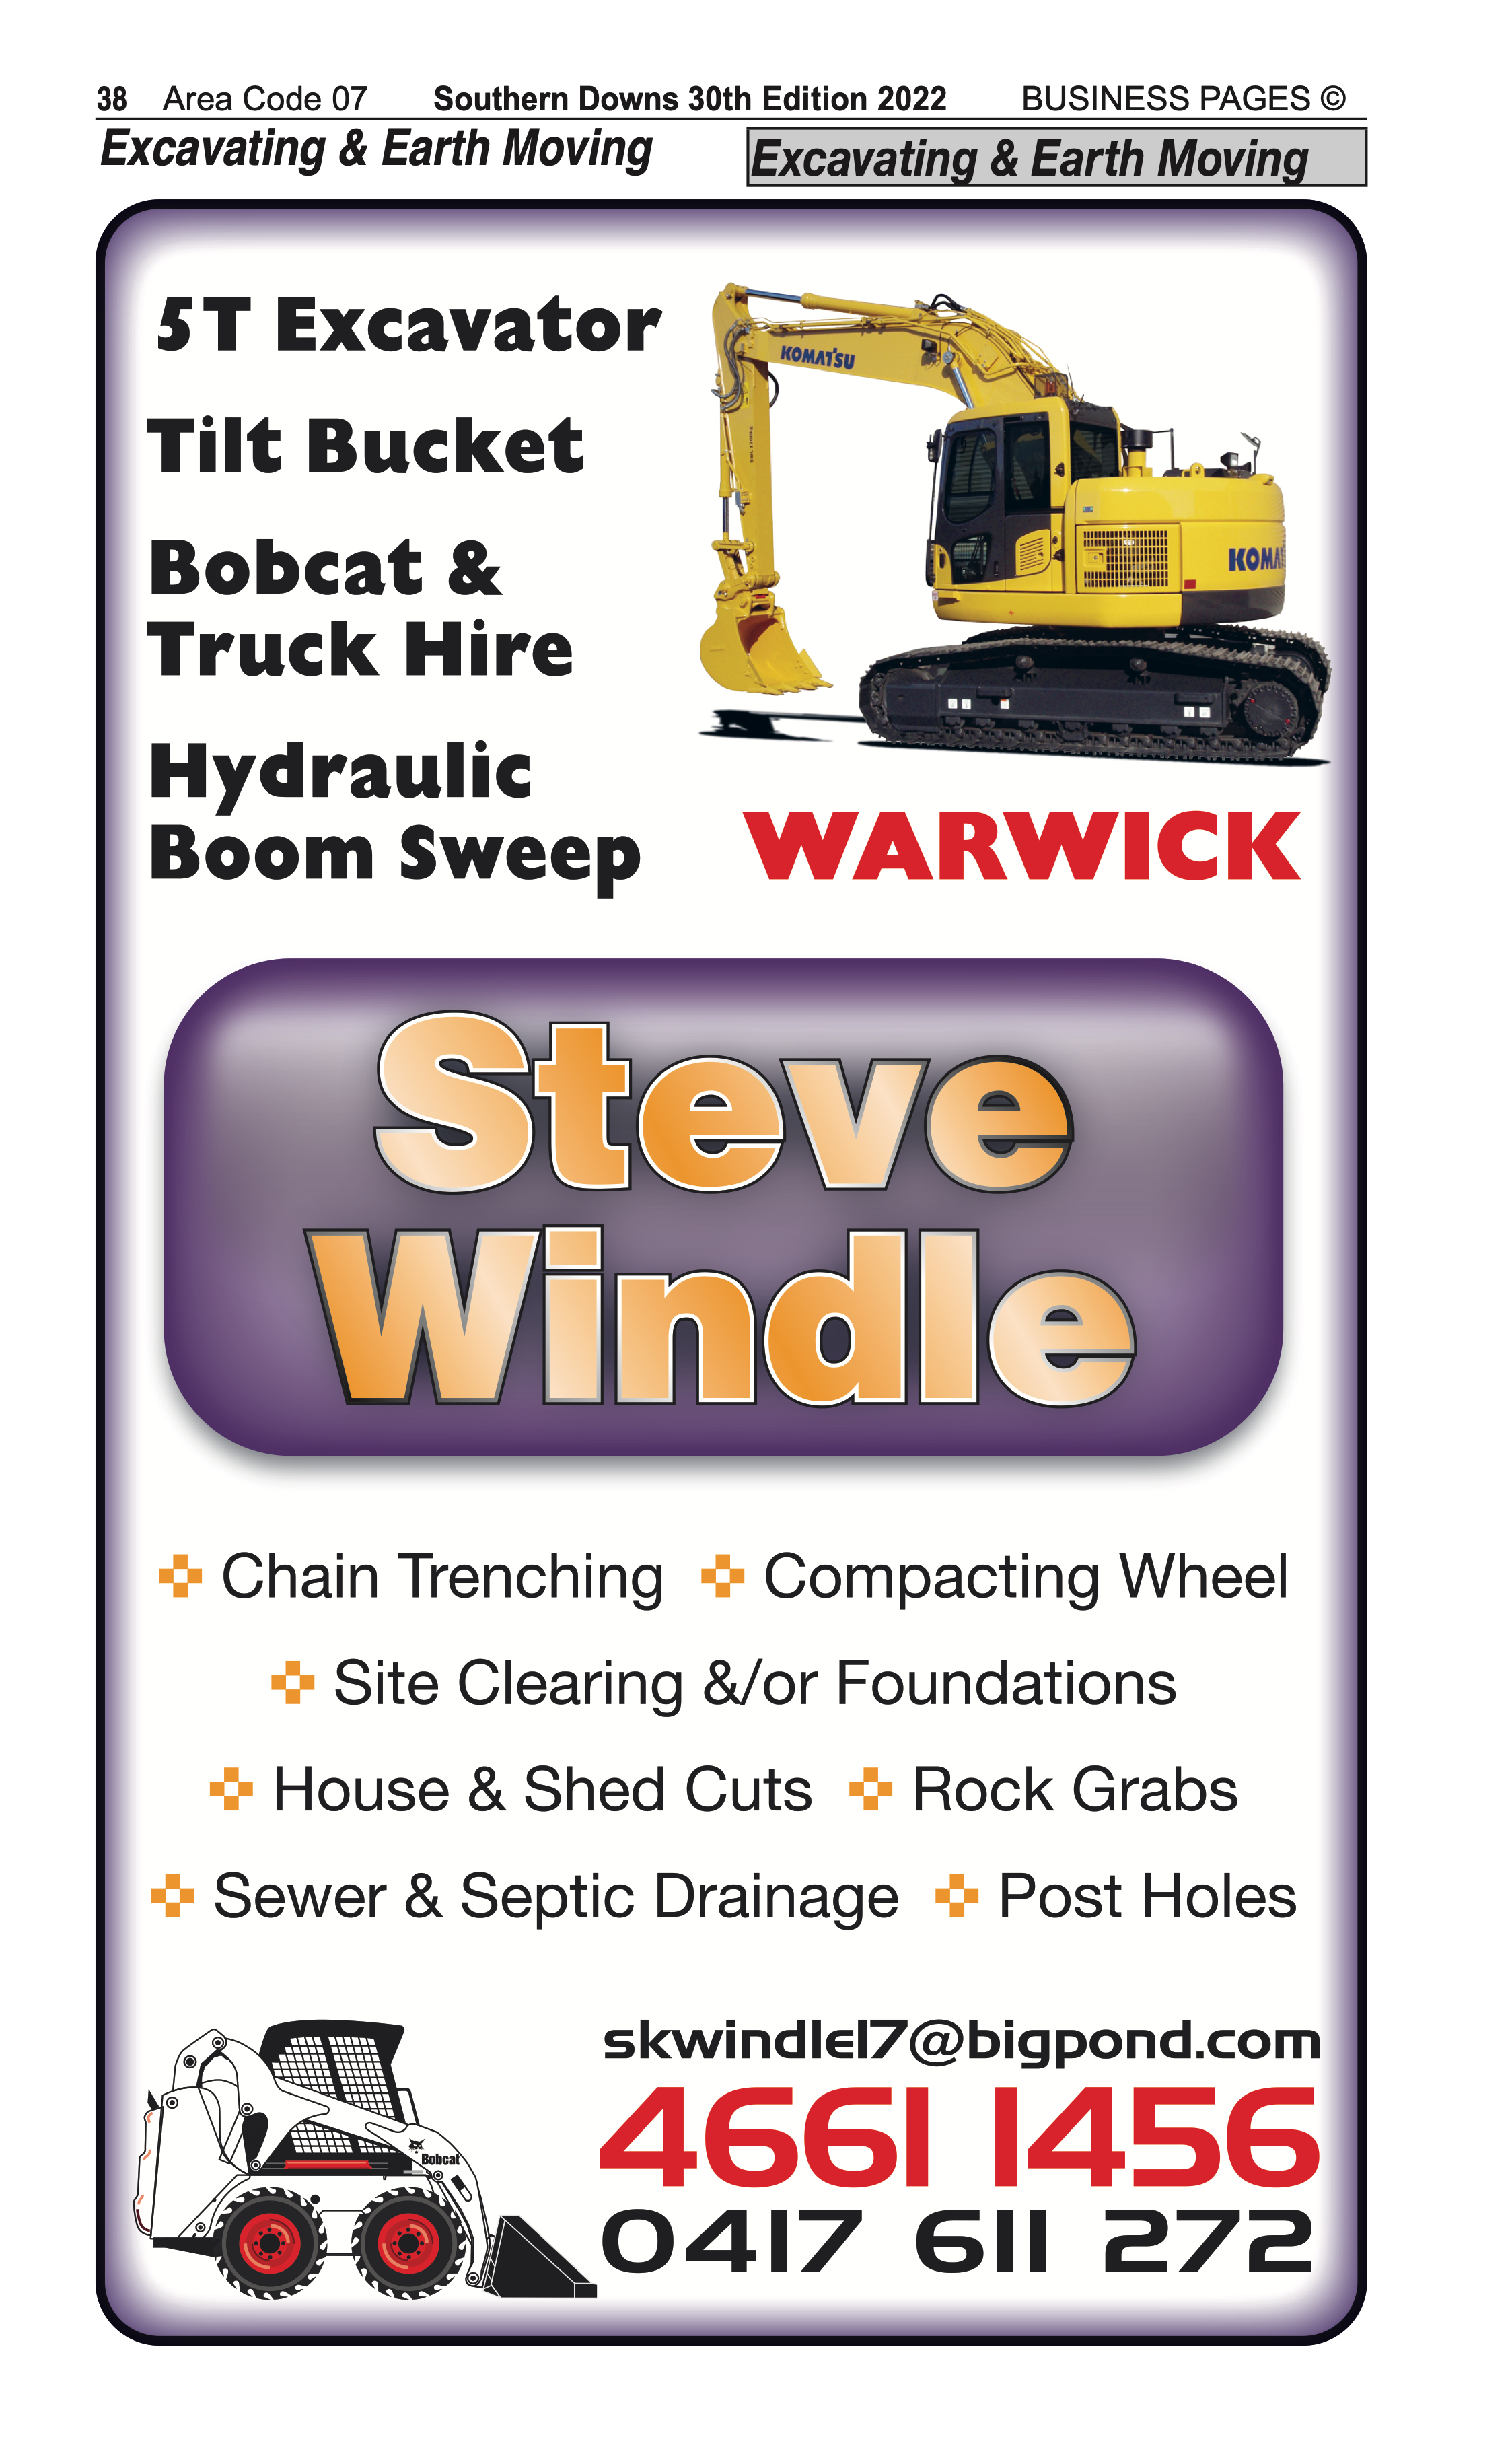 Cosmetic Elegance Clinic | Cosmetic Medical Procedures in Toowoomba | PBezy Pocket Books local directories - page 38